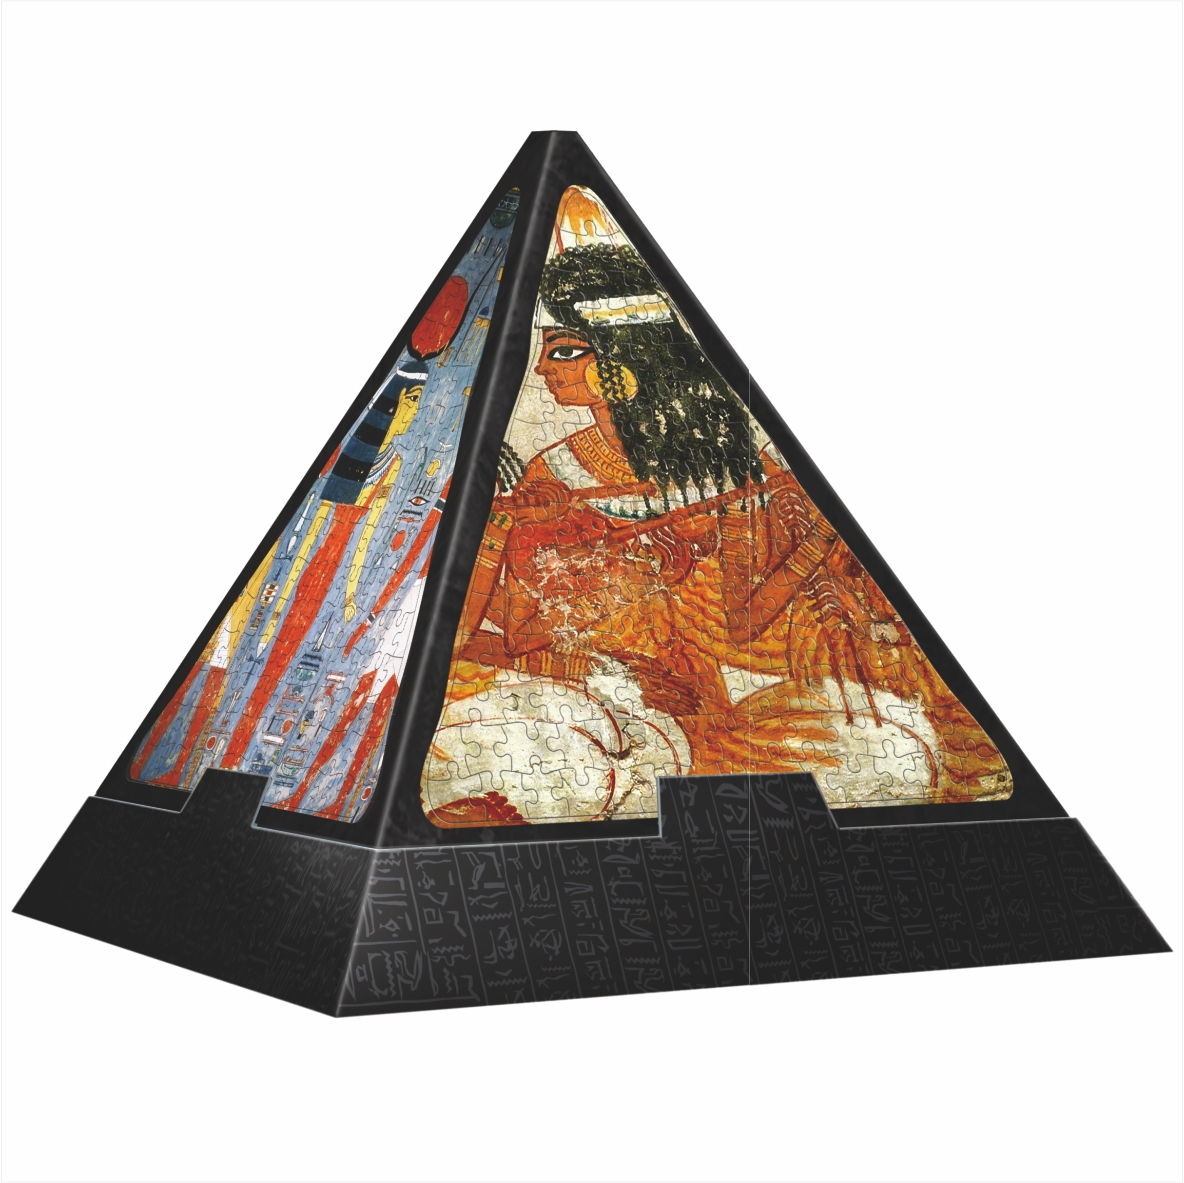 Jigsaw Puzzle - 500 Pieces - 3D Pyramid - Egypt ...